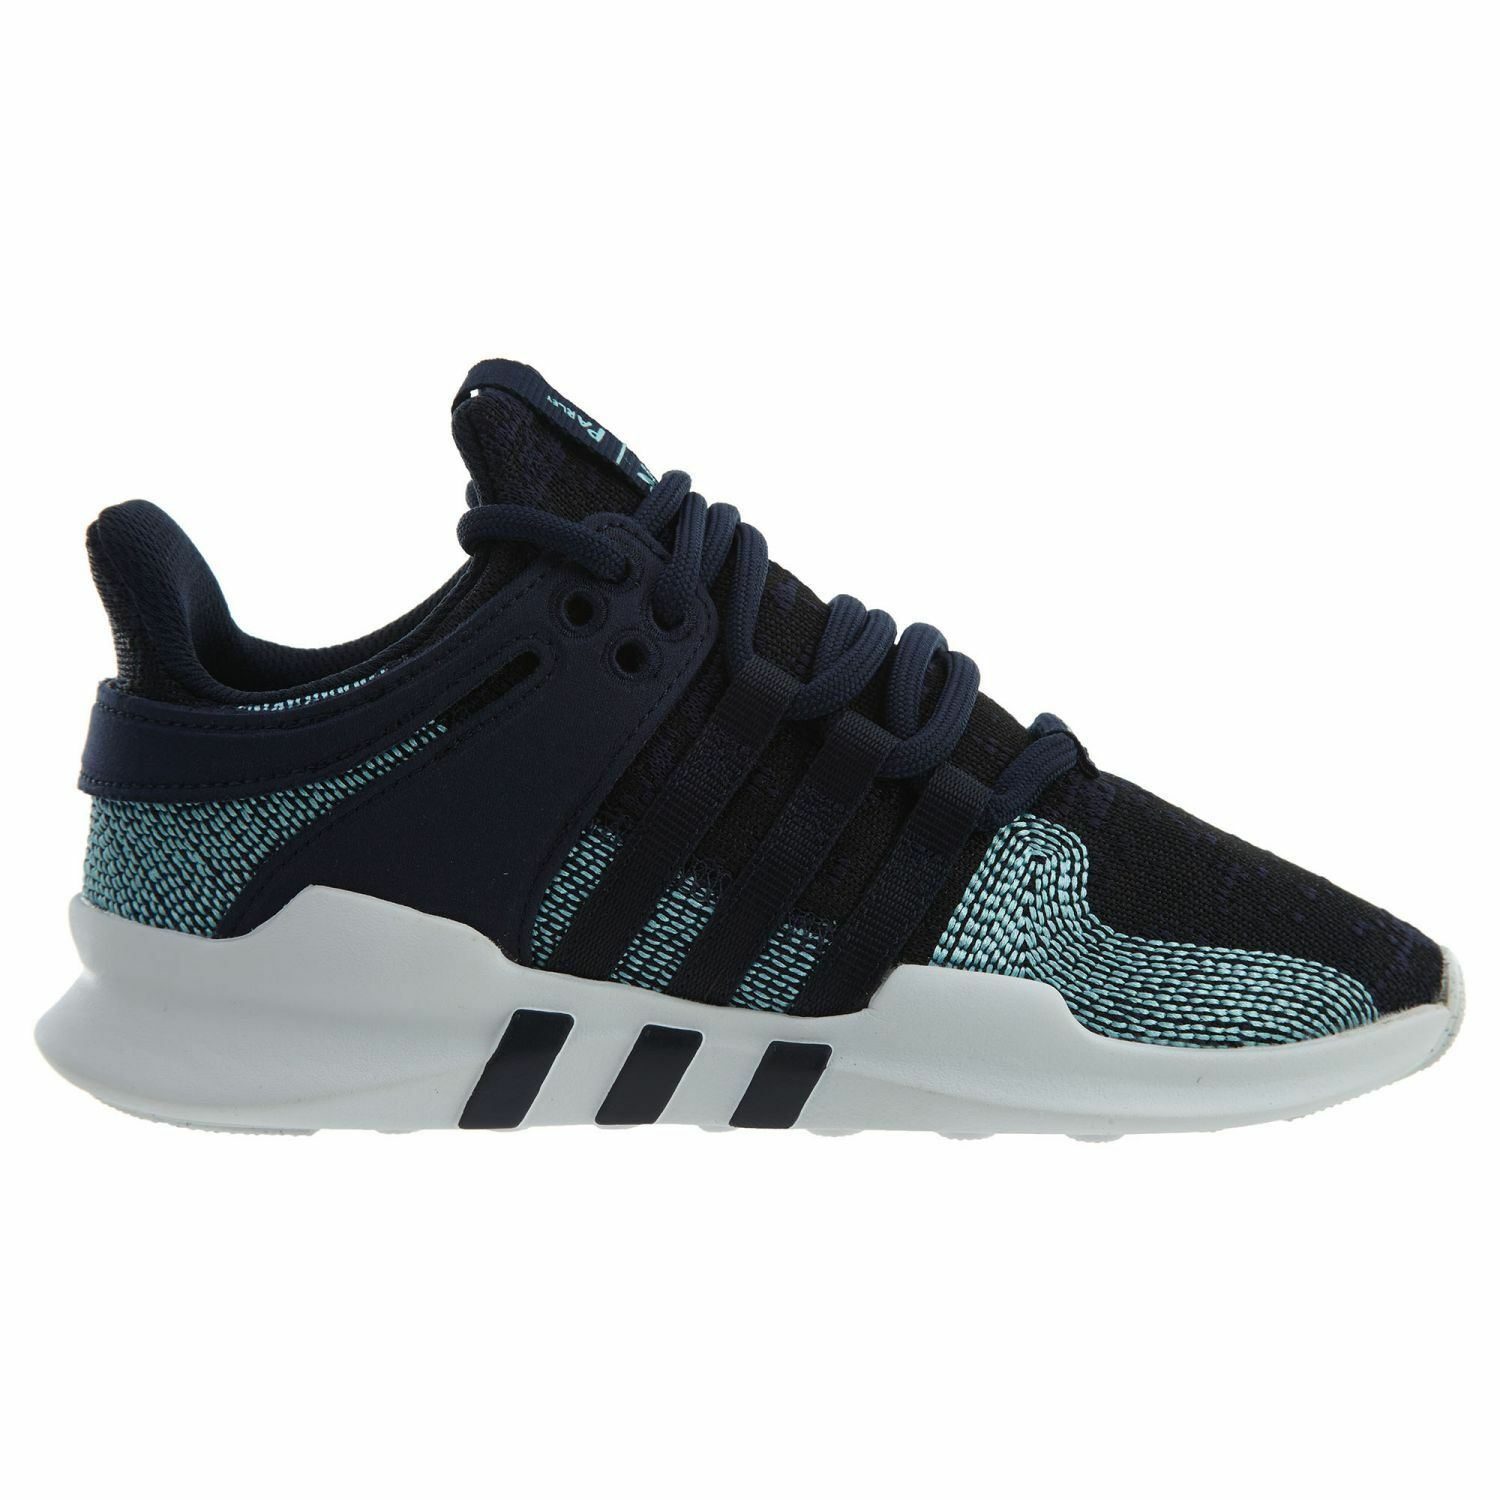 Adidas EQT Support Adv CK Parley Mens CQ0299 Legend Ink Blue Knit Shoes Size 10